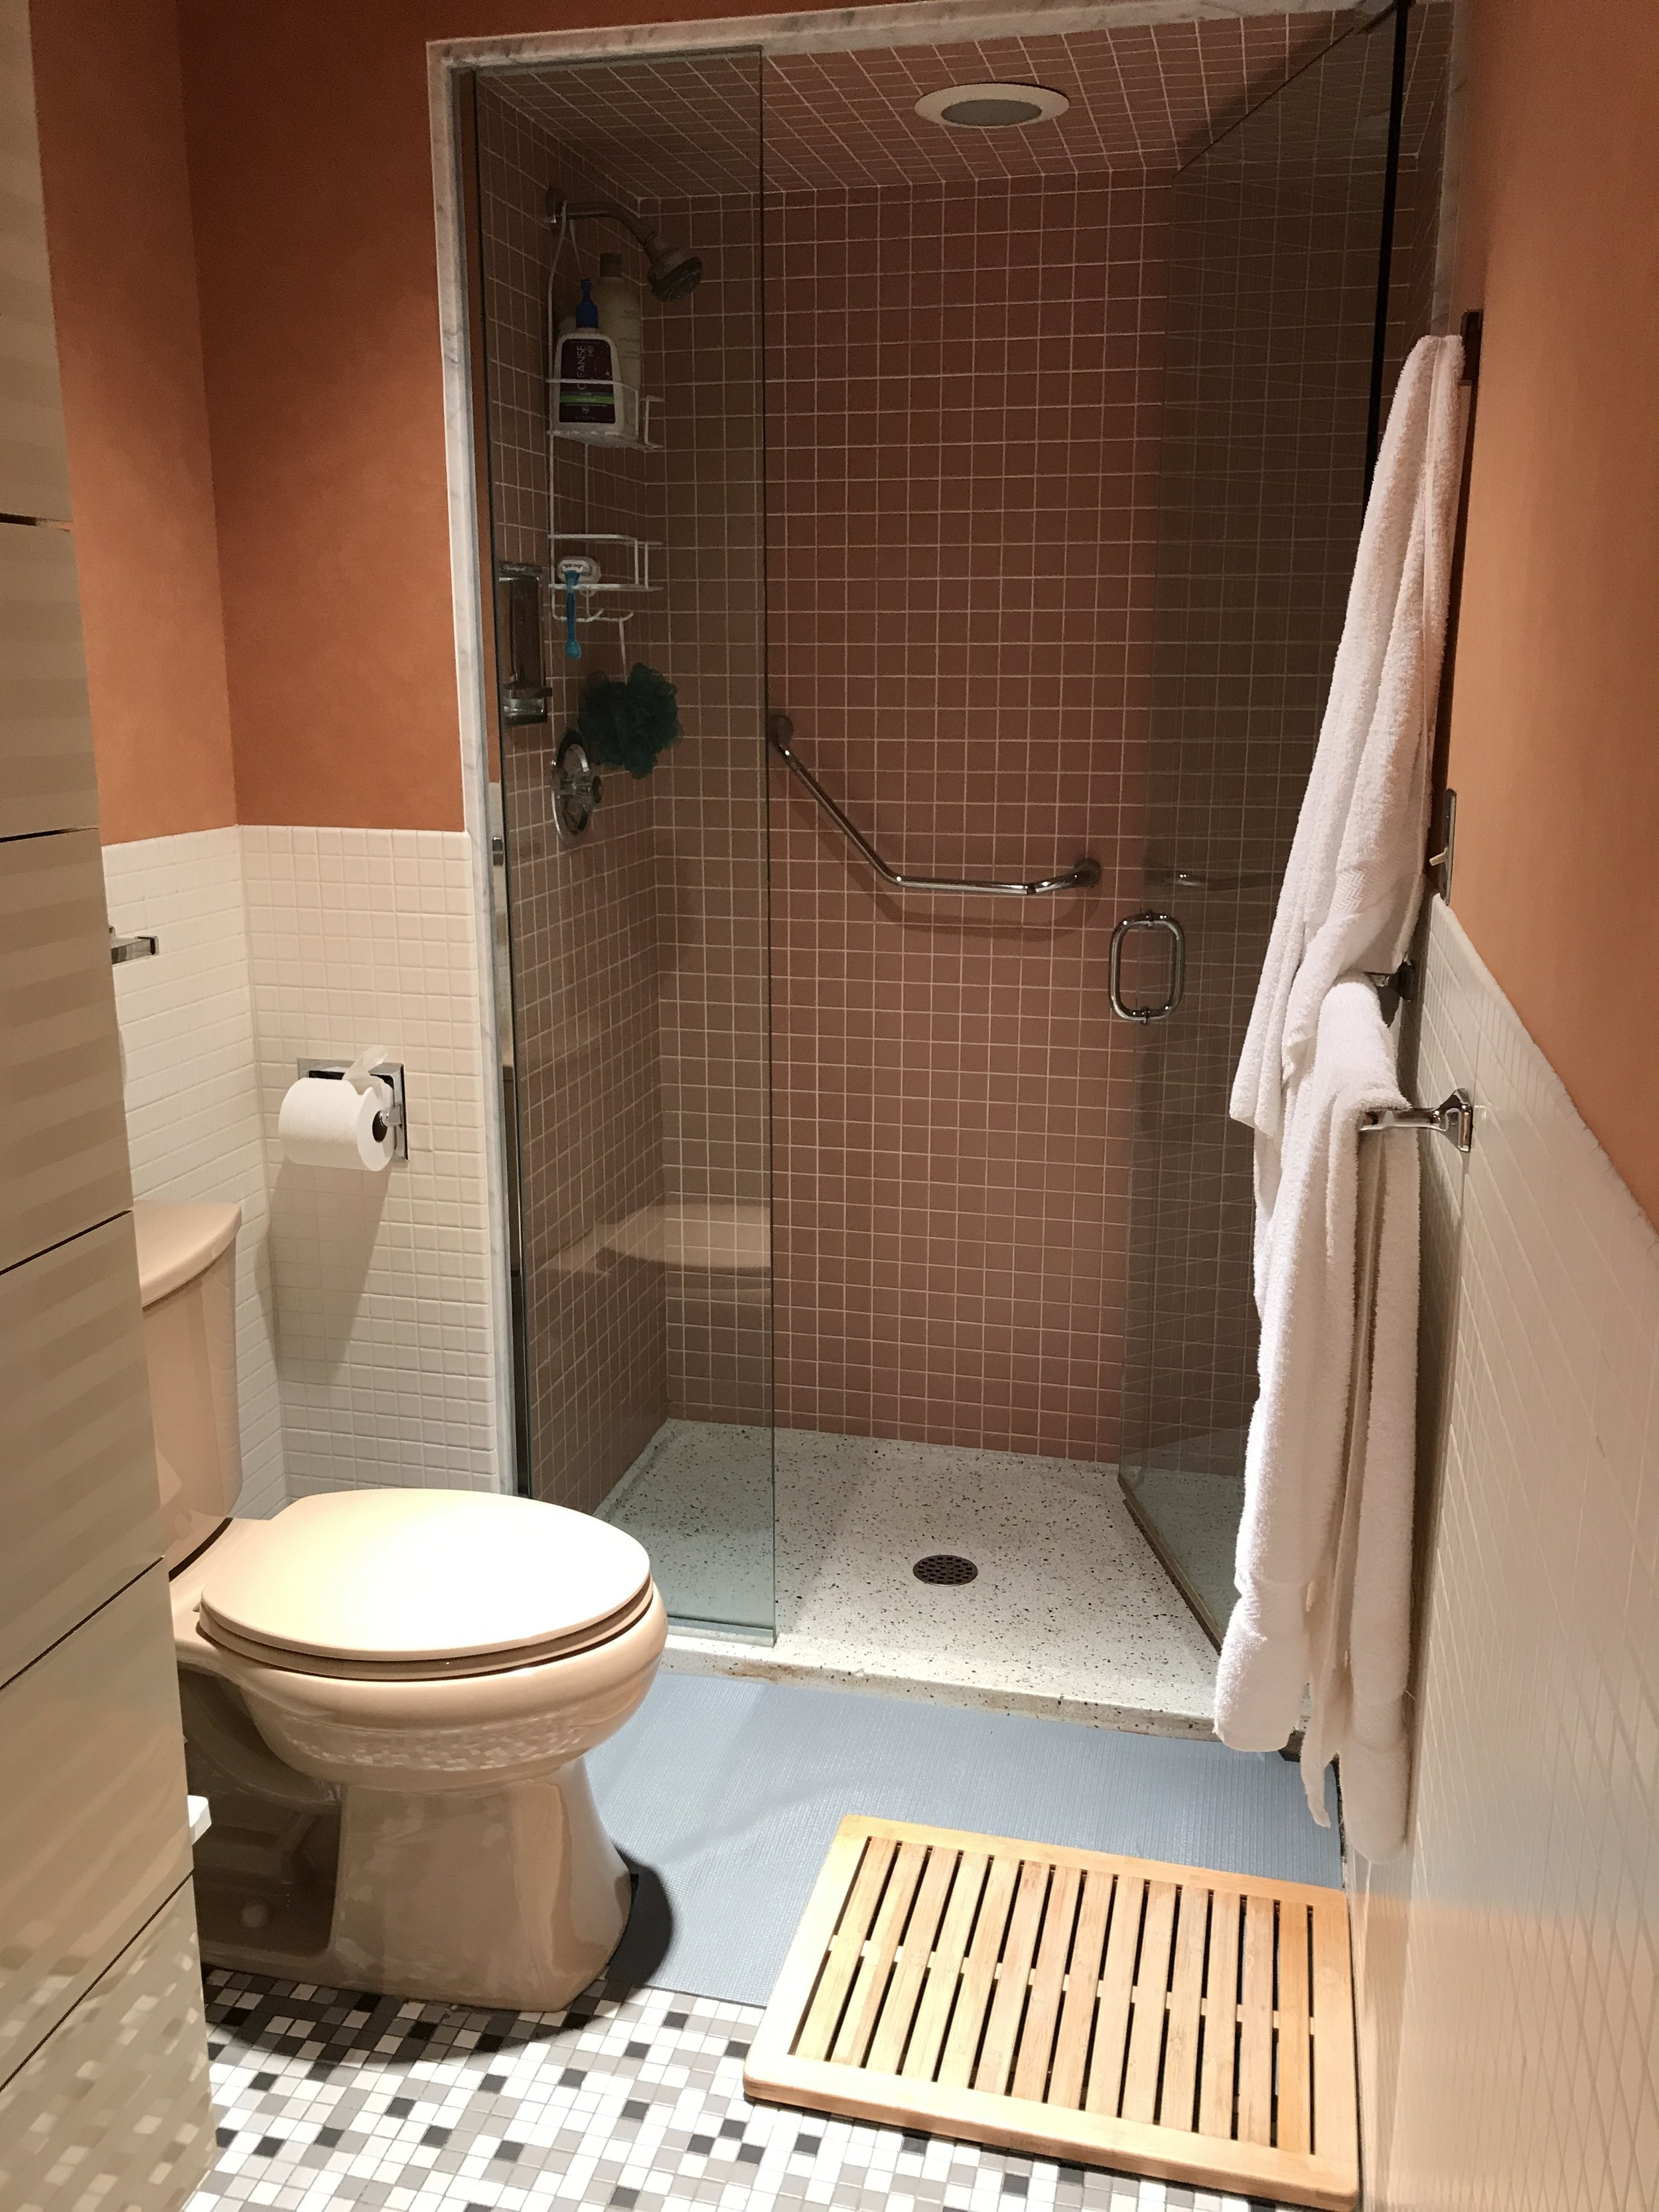 More peach goodness right here, along with different kinds of flooring (but no carpet?!), the small shower, and the mauve toilet.